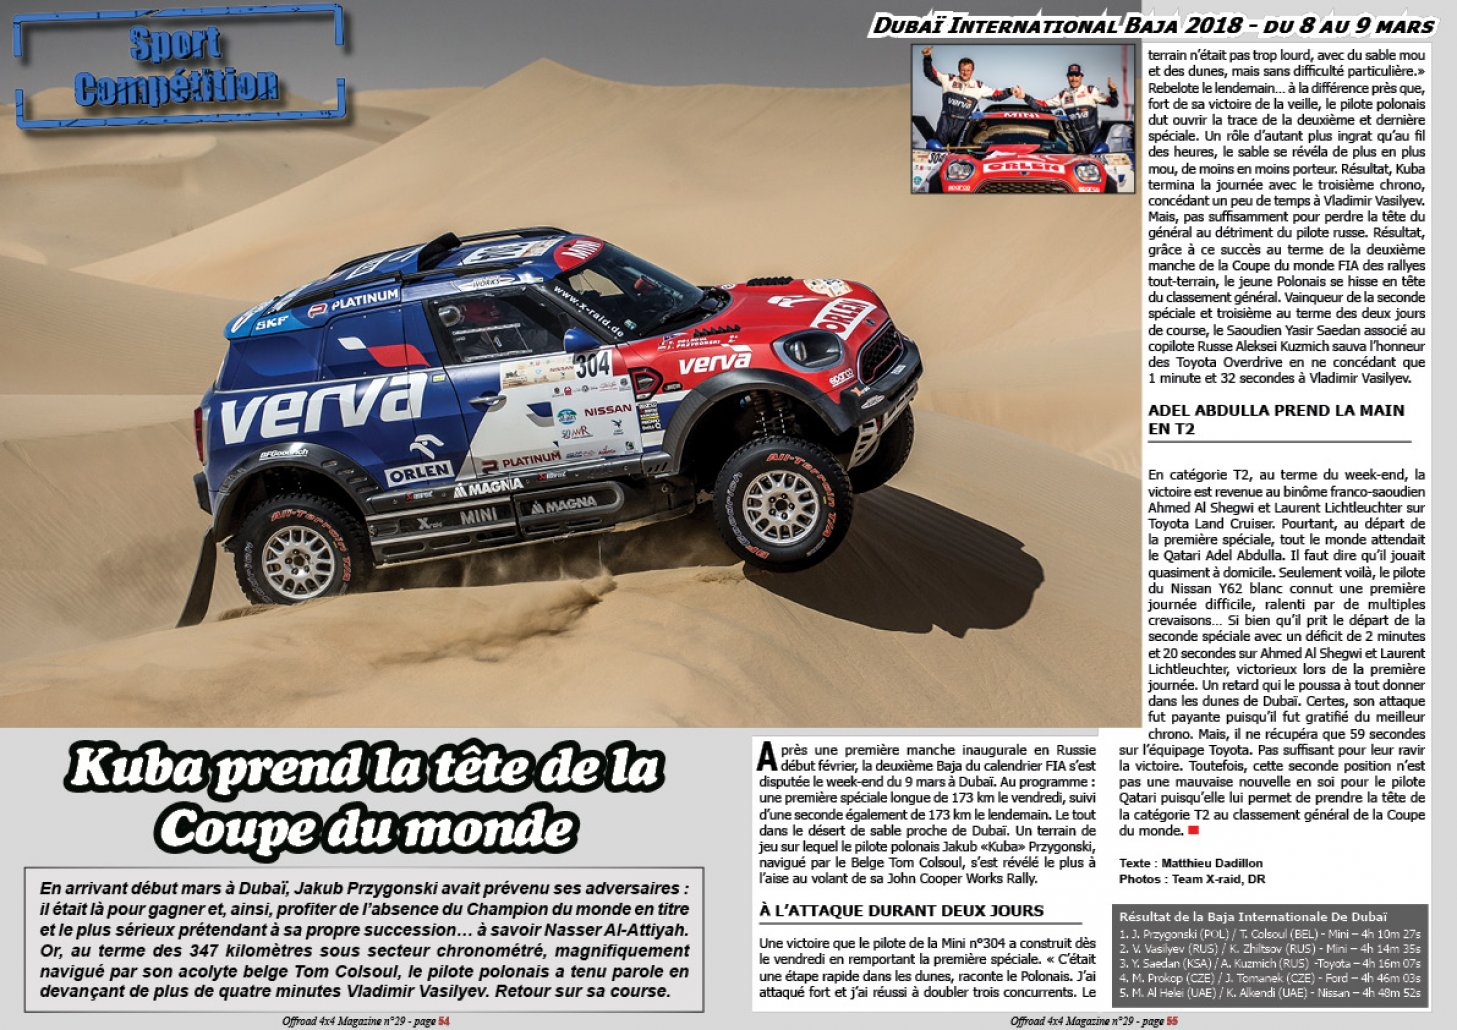 La Dubaï International Baja 2018